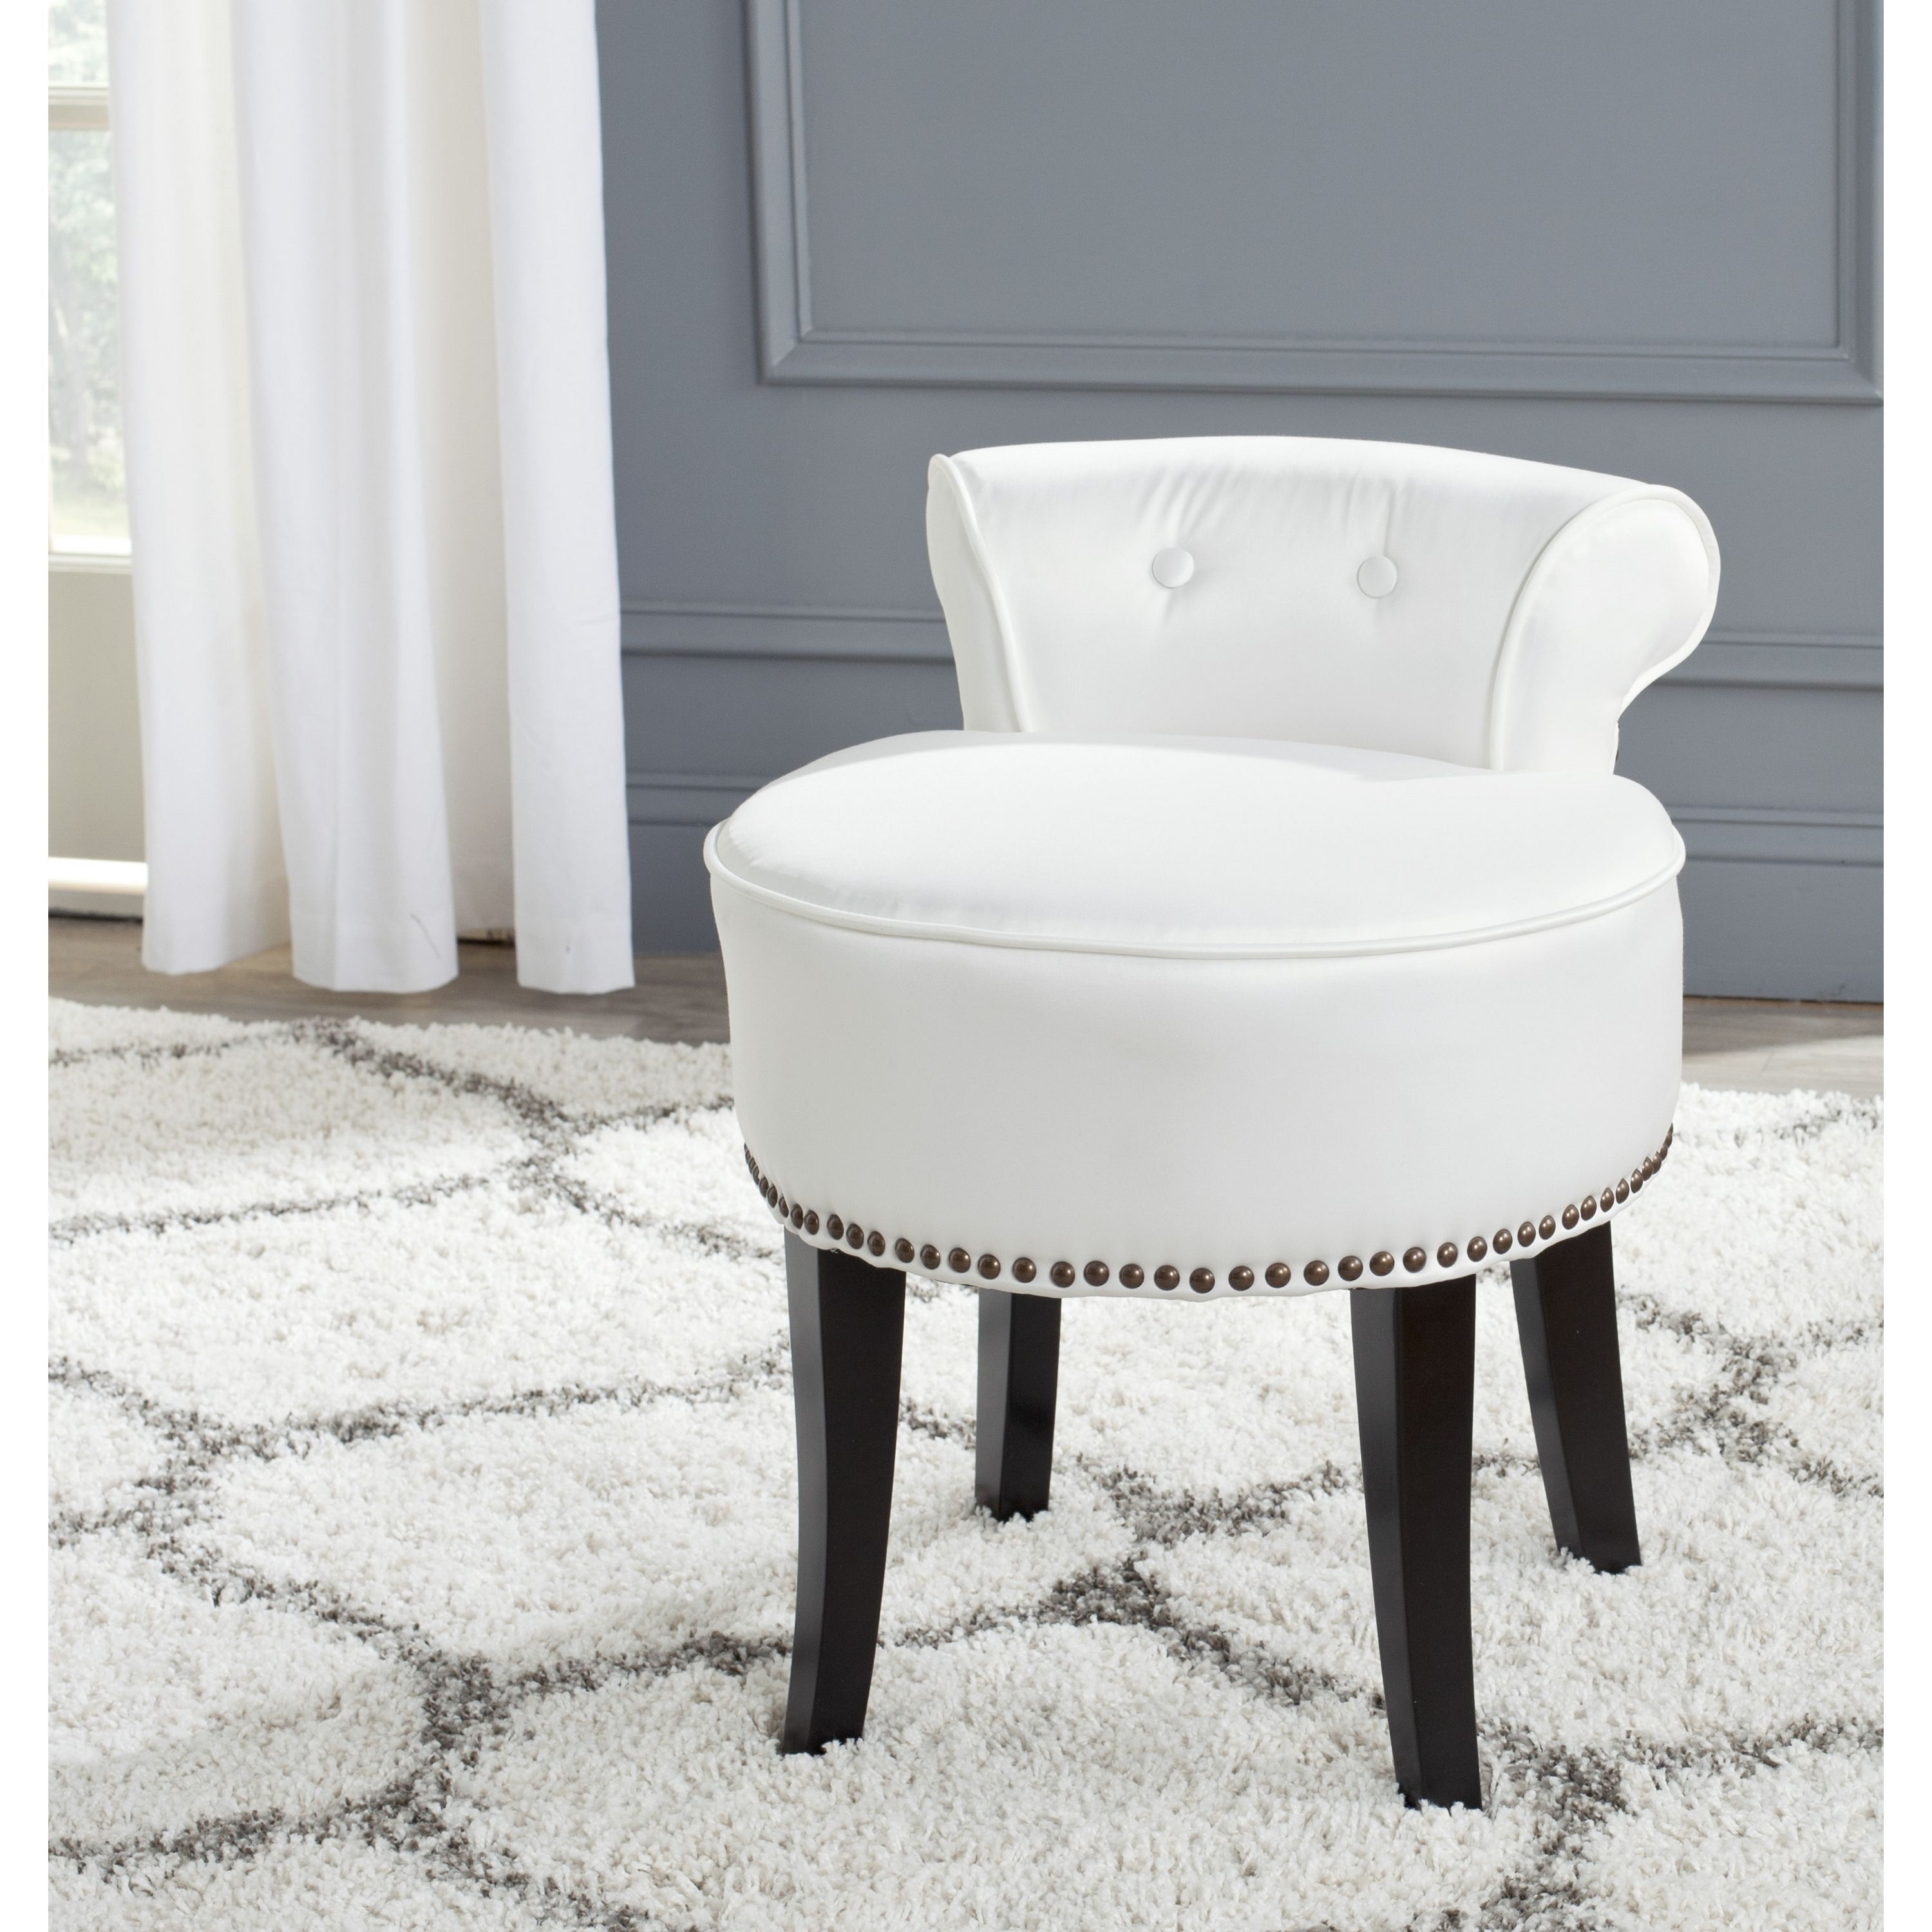 Glamorous Nailhead Vanity Chair Photos - Best image 3D home ...